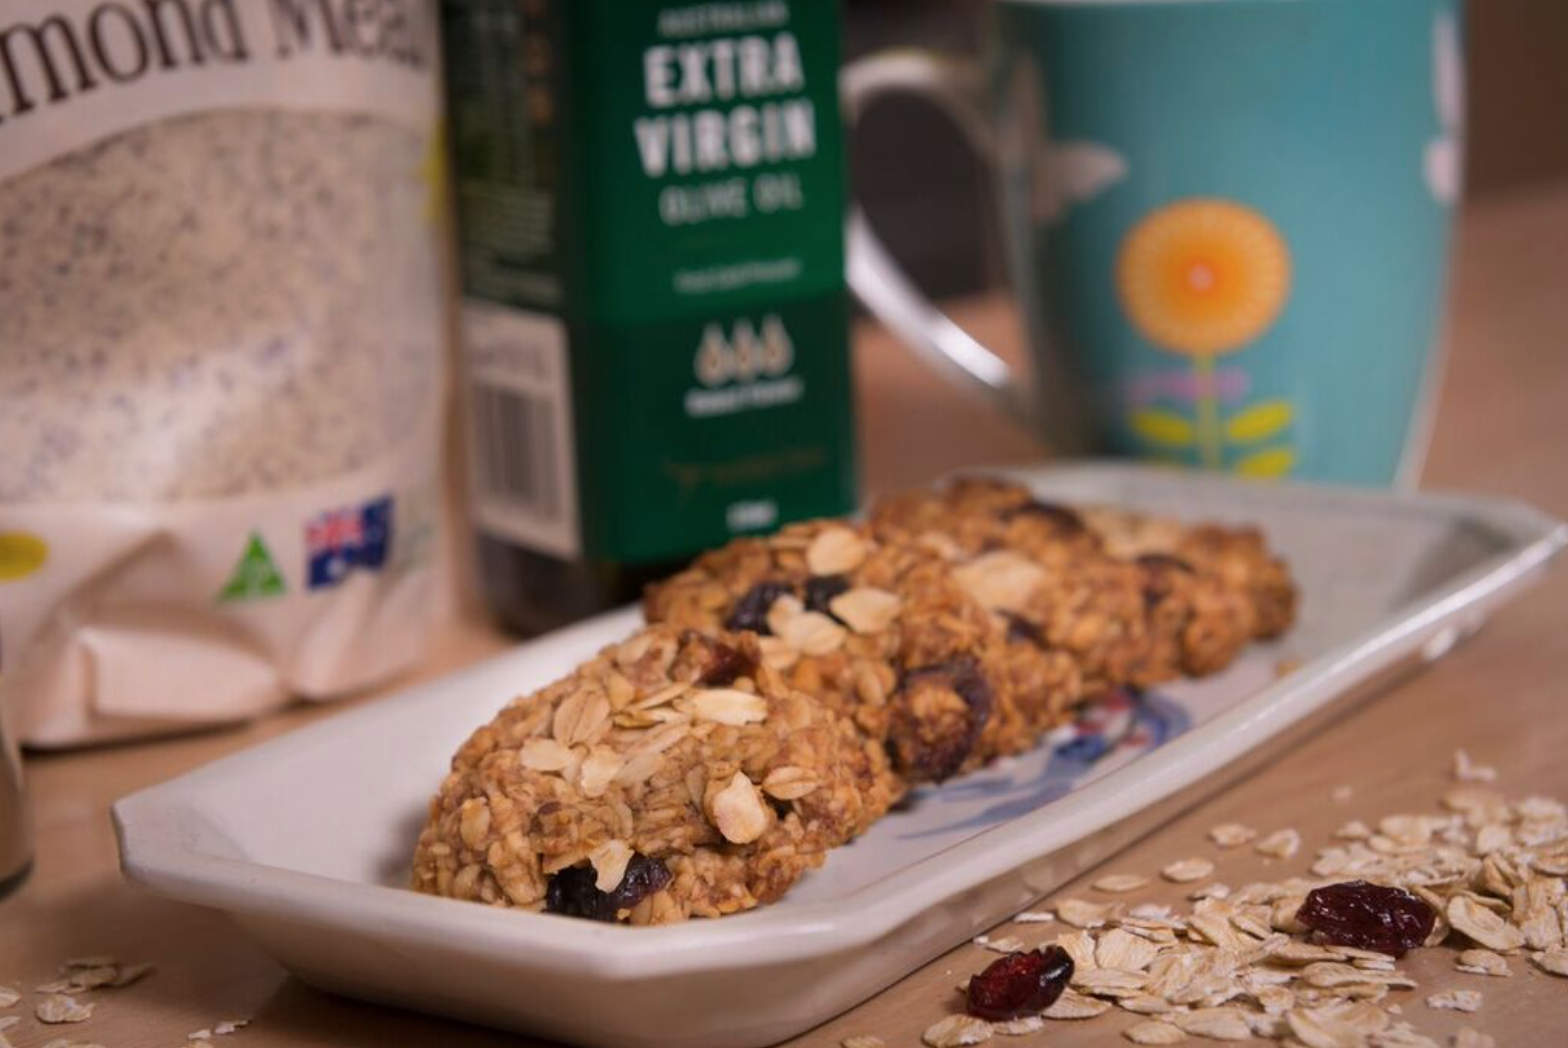 Recipe of the Week: Banana & Oat Cookies